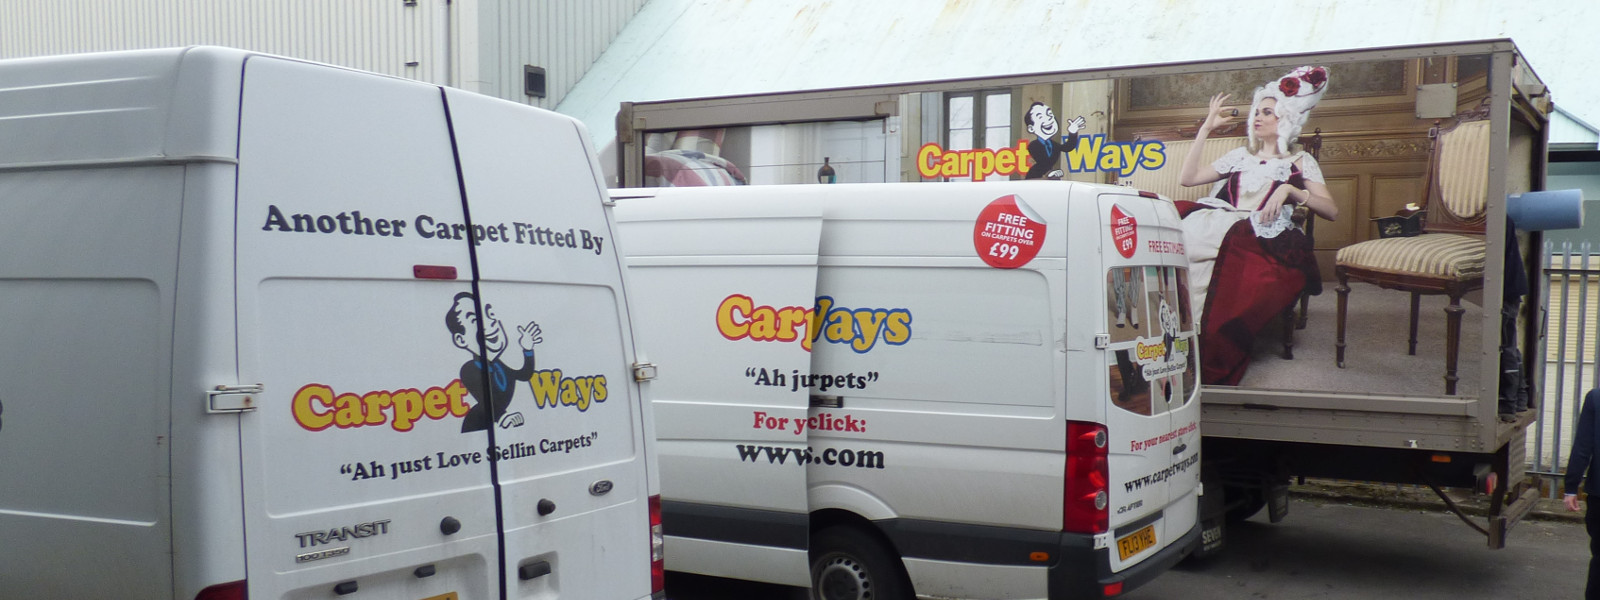 CarpetWays Delivery Vans and Lorry